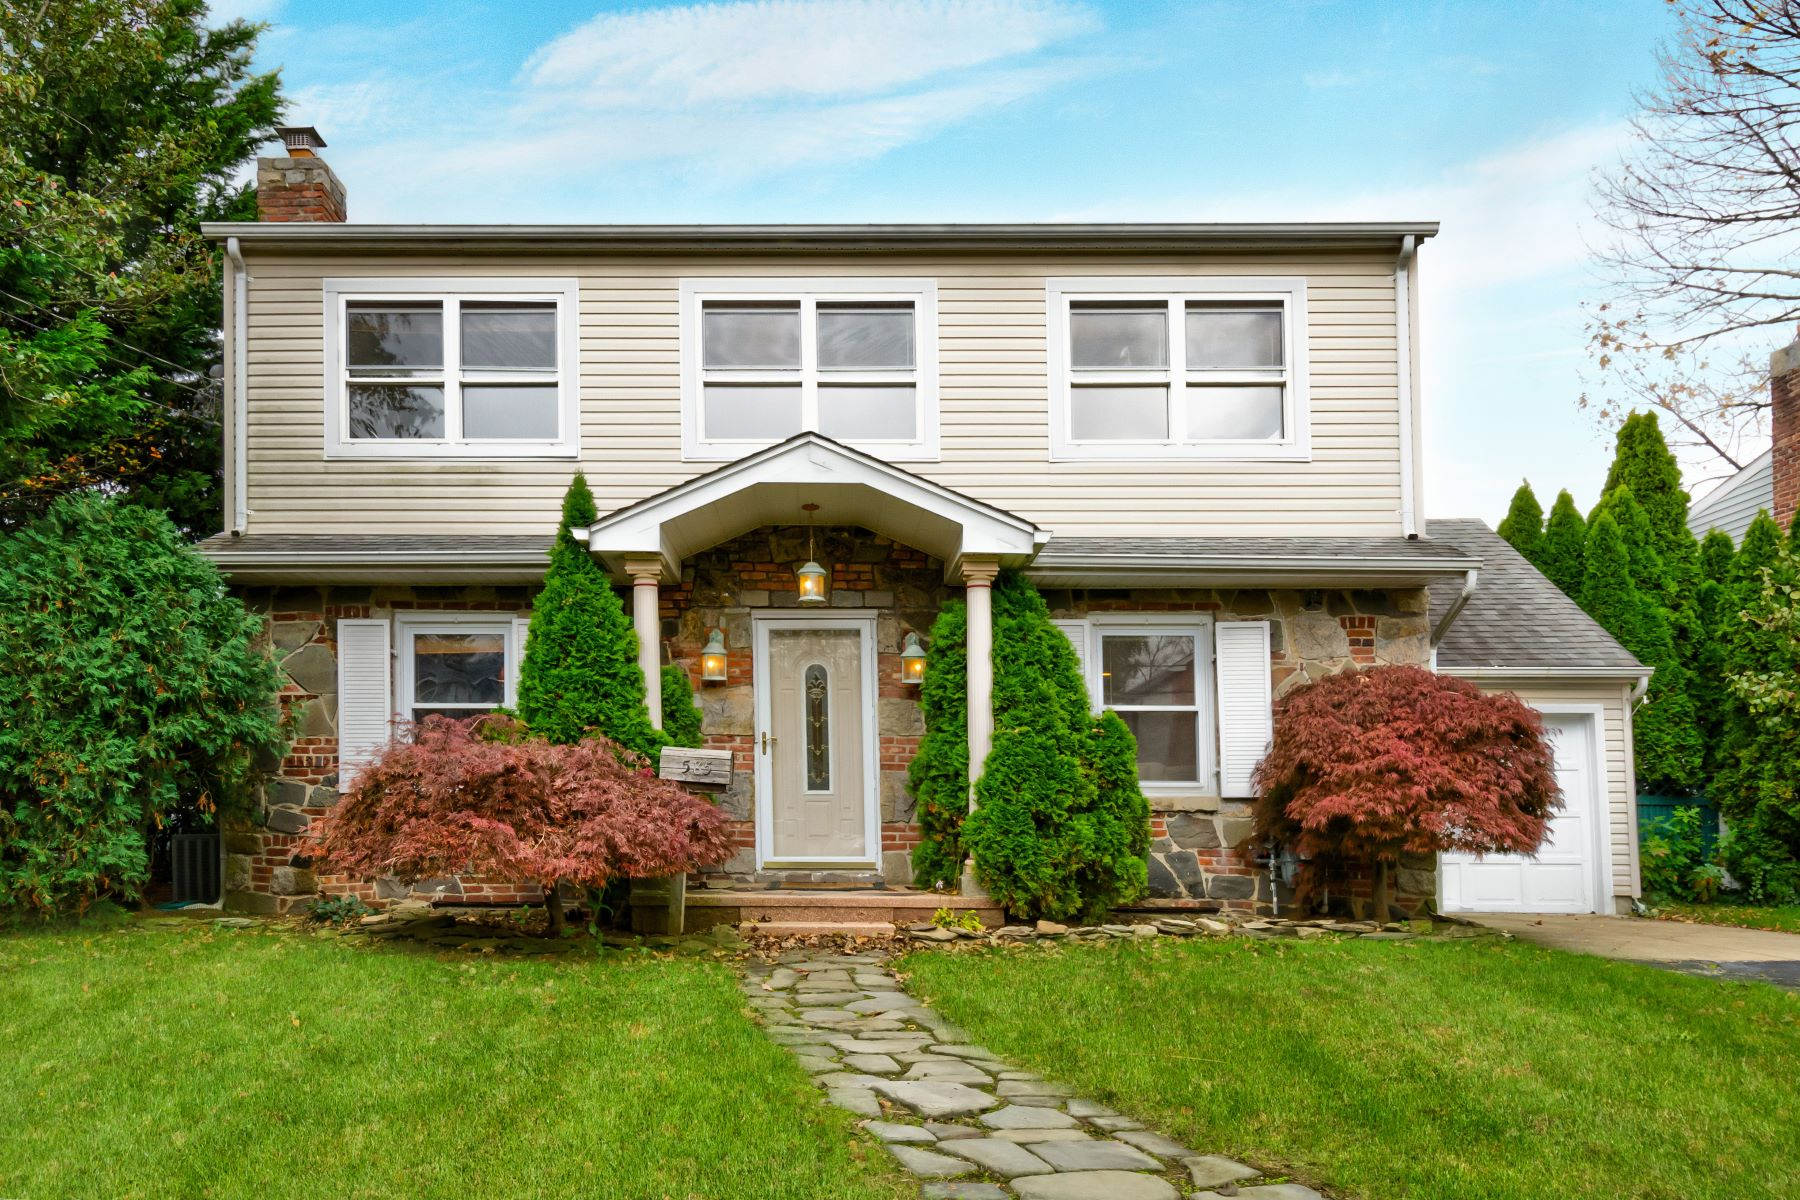 Single Family Homes for Sale at Williston Park 585 Foch Blvd Williston Park, New York 11596 United States